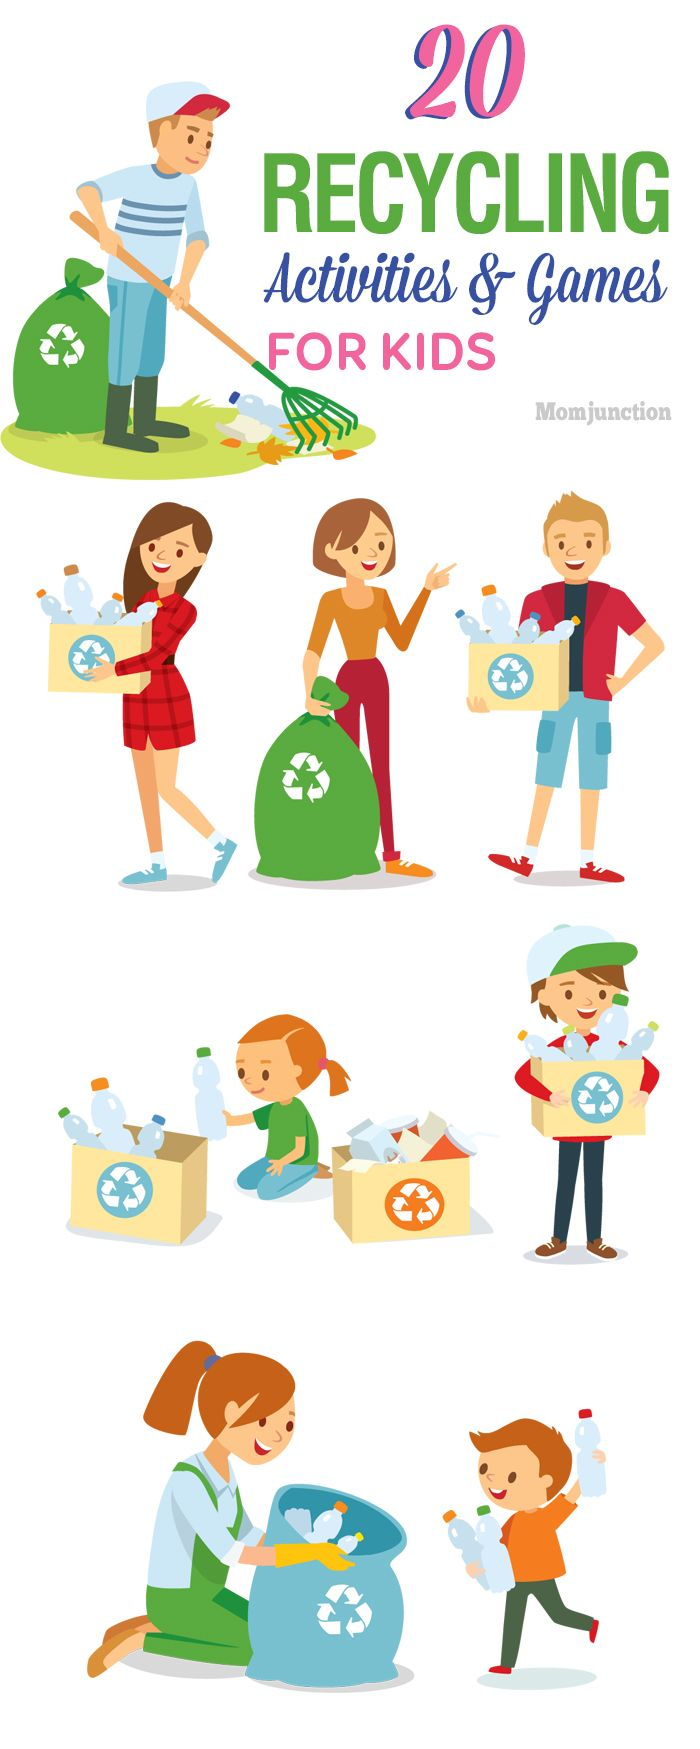 20 Recycling Activities And Games For Kids